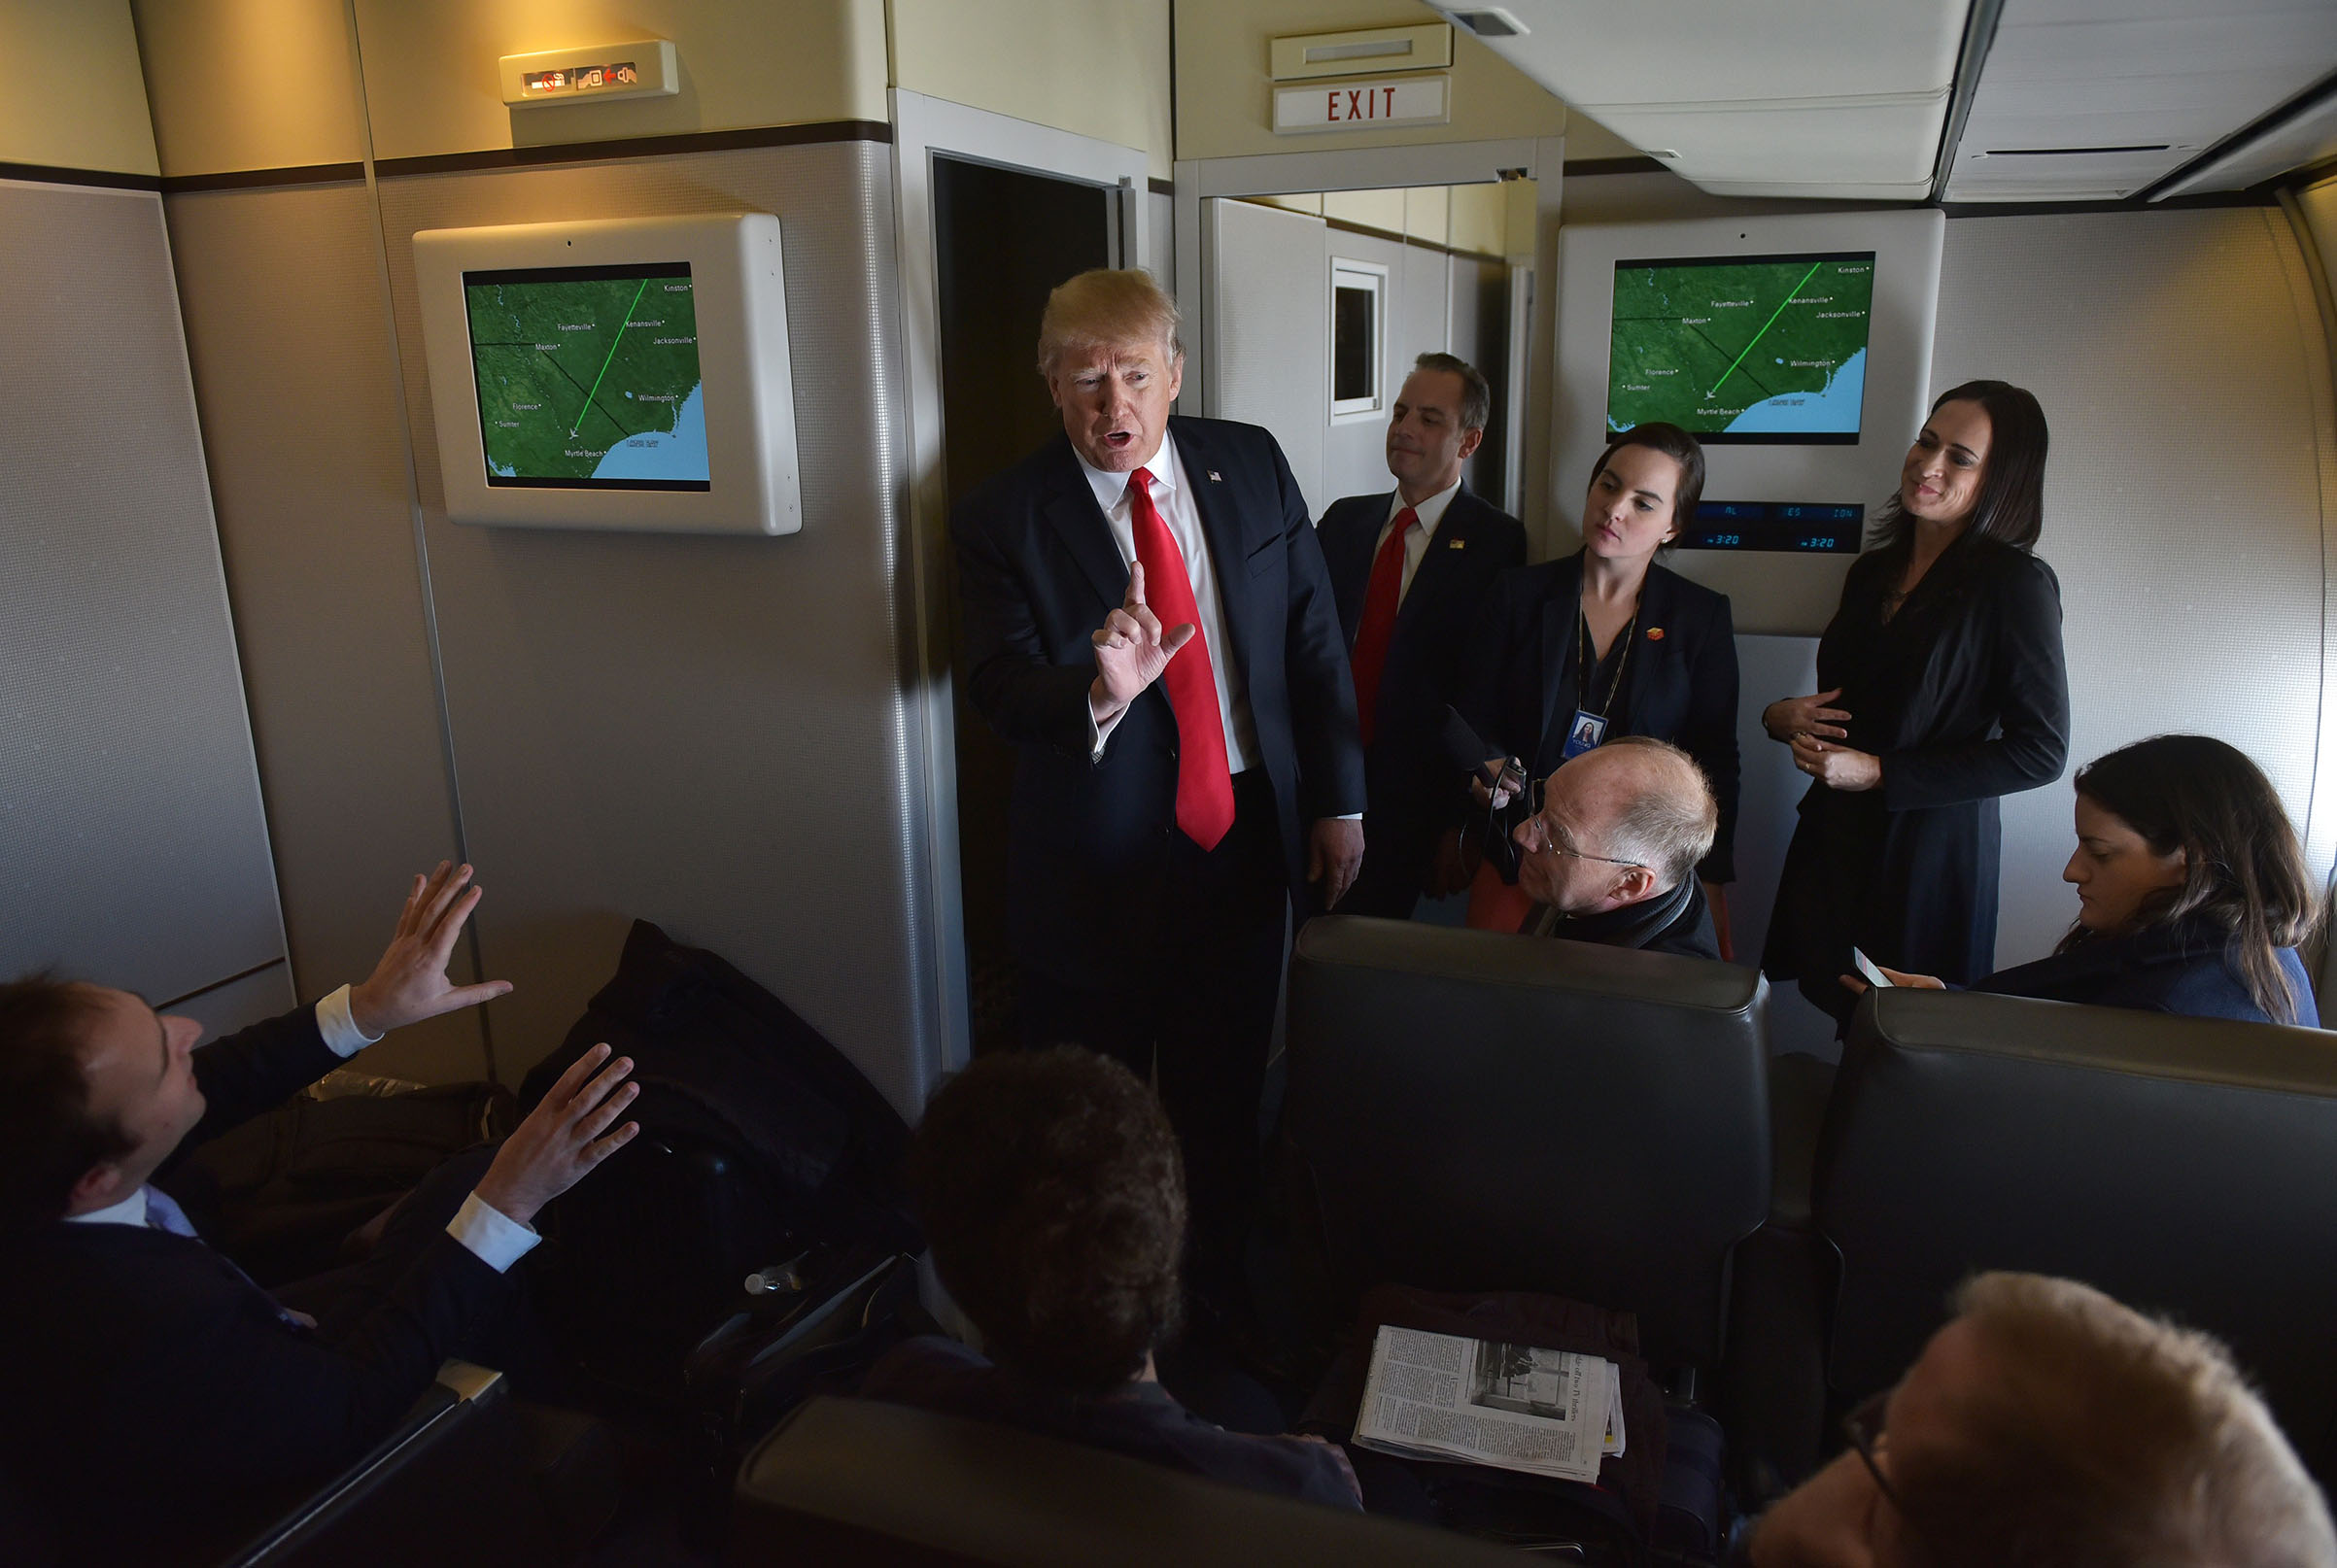 President Donald Trump chats with reporters on board Air Force One before departing from Andrews Air Force Base.